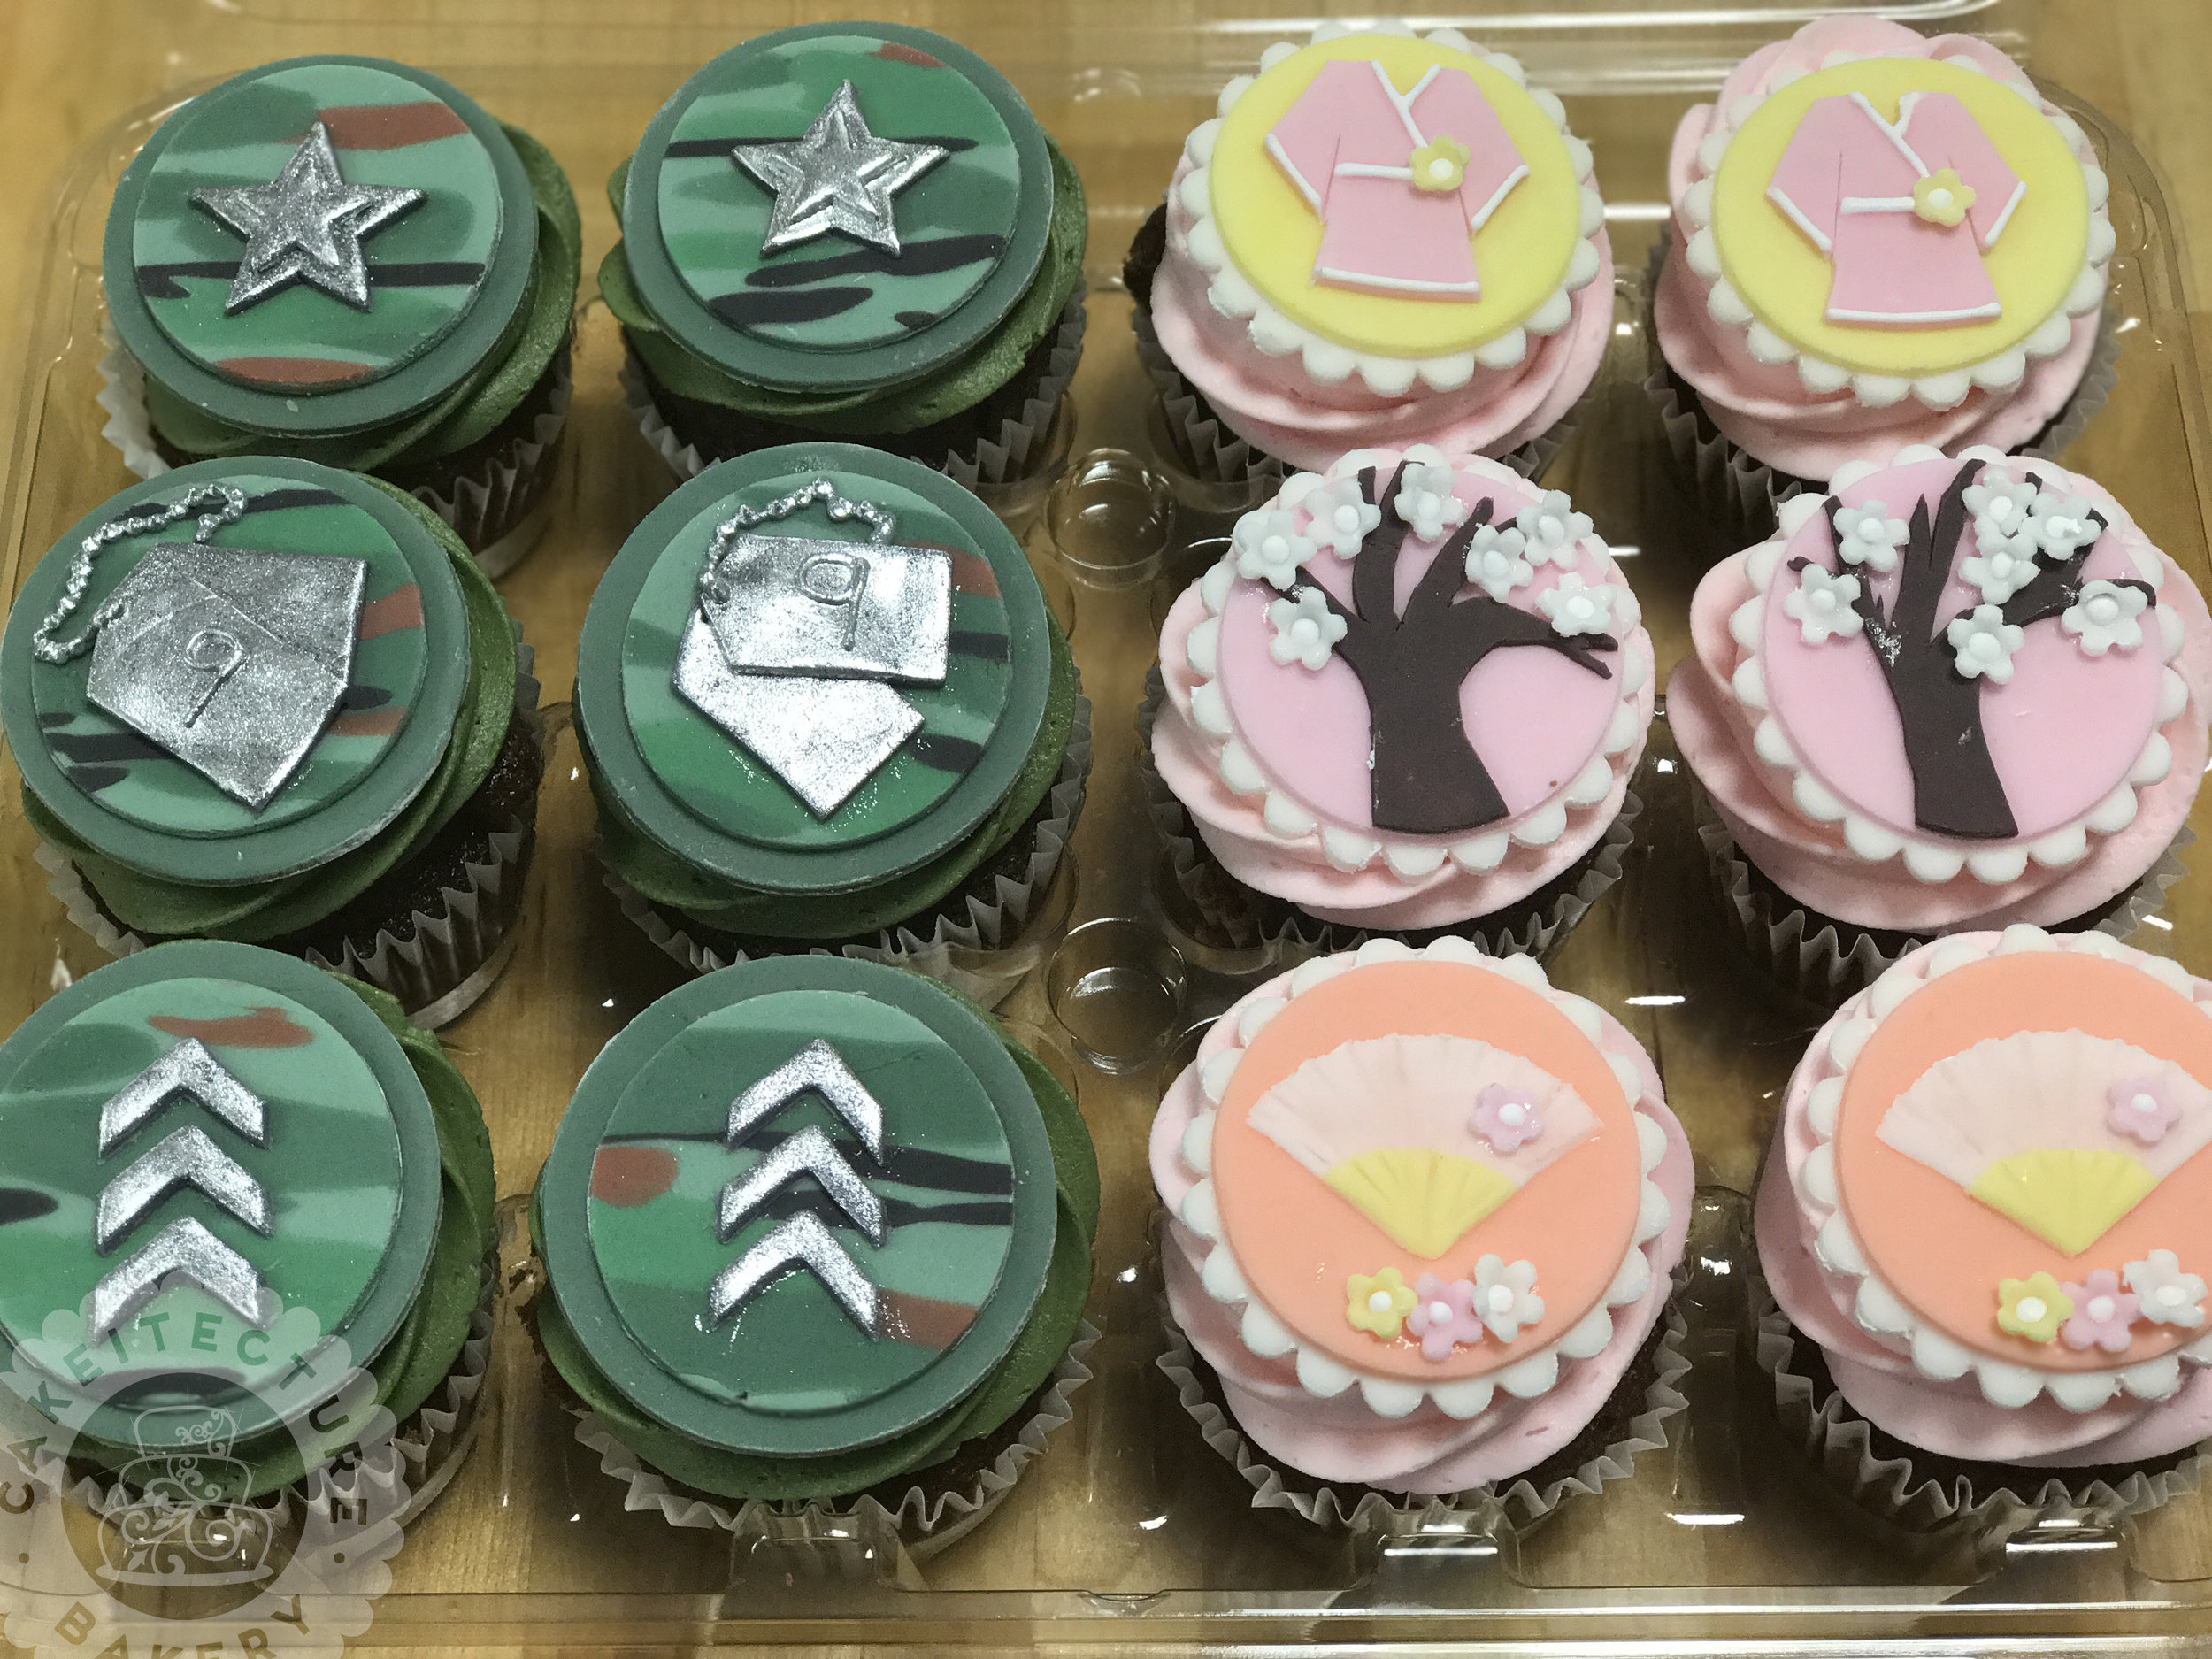 Cakeitecture Bakery 1710 his and hers cupcakes.jpg